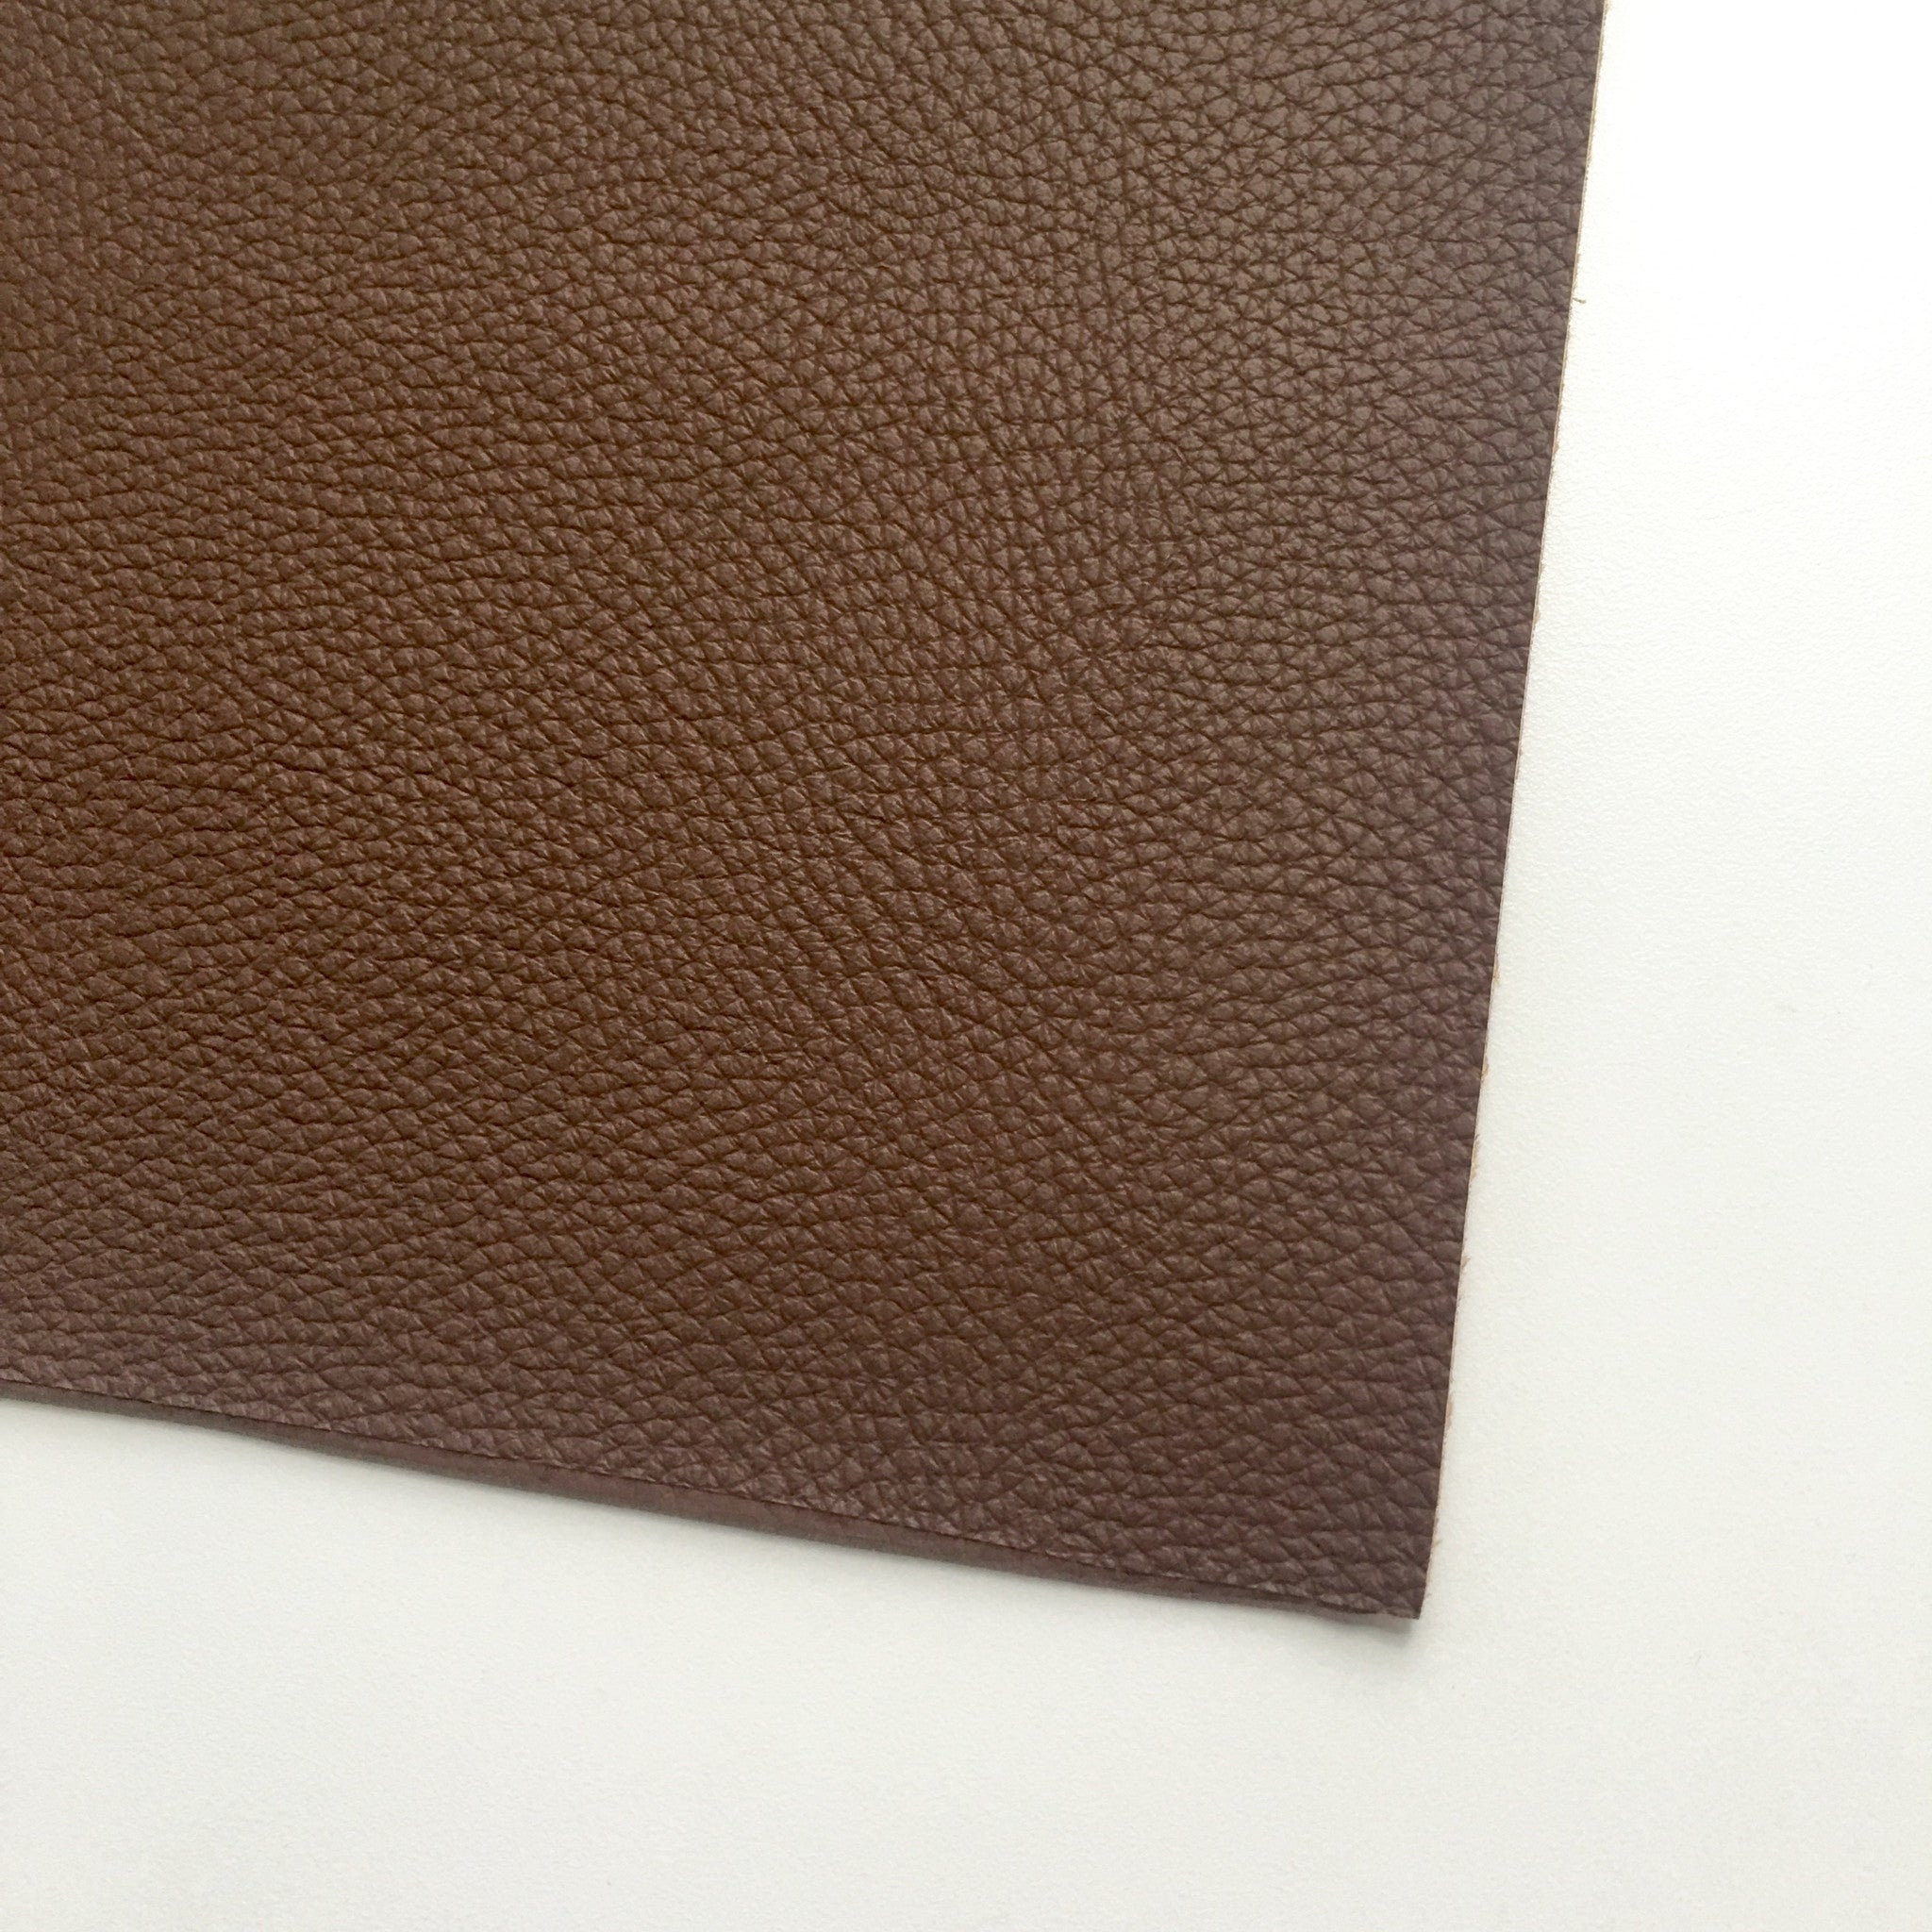 Pigskin Textured Faux Leather – Tulip Bloom